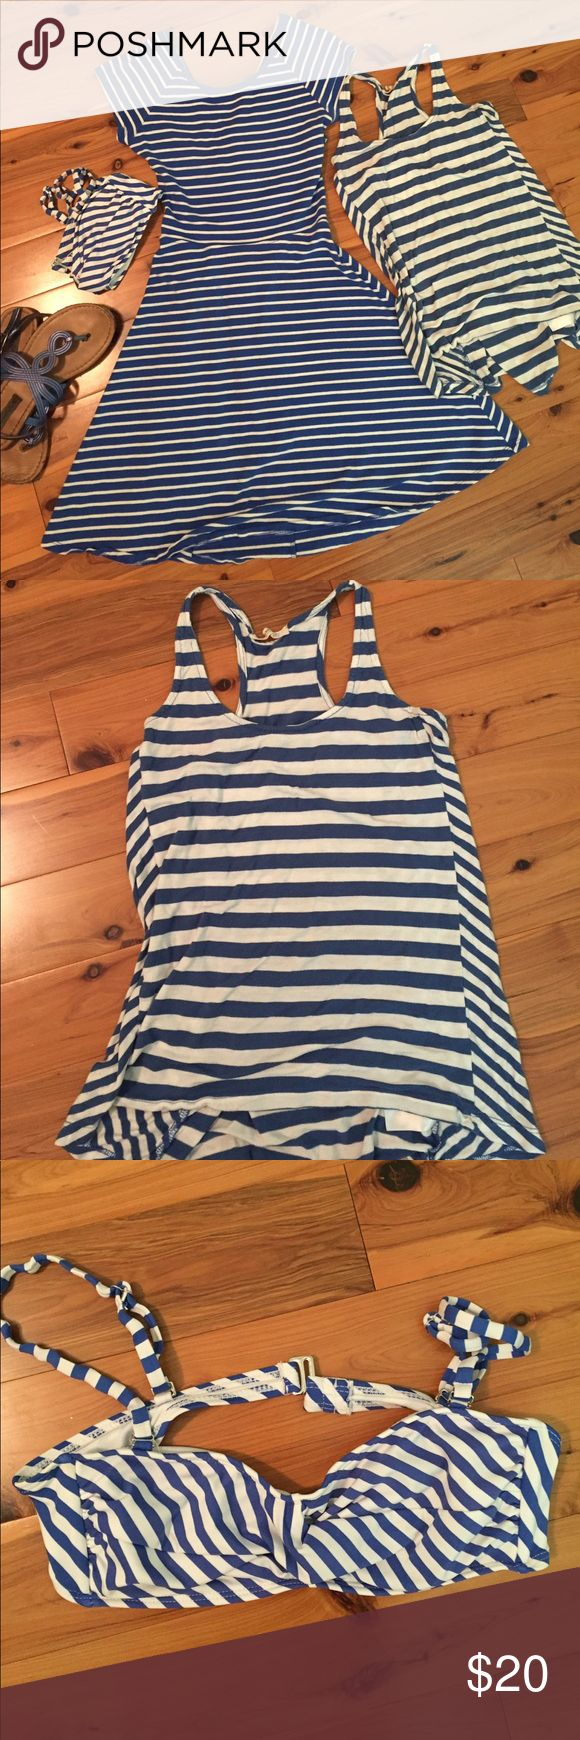 Blue and white stripes bundle A dress, a tank top and a bandeau bikini top all in an adorable blue and white striped print! Dress is a size small white an adorable cut out in the back. Tank top is old navy size XS. The bikini top is size medium and has removal straps. Must note that the bikini does not have the pads however has a spot for them. Old Navy Other